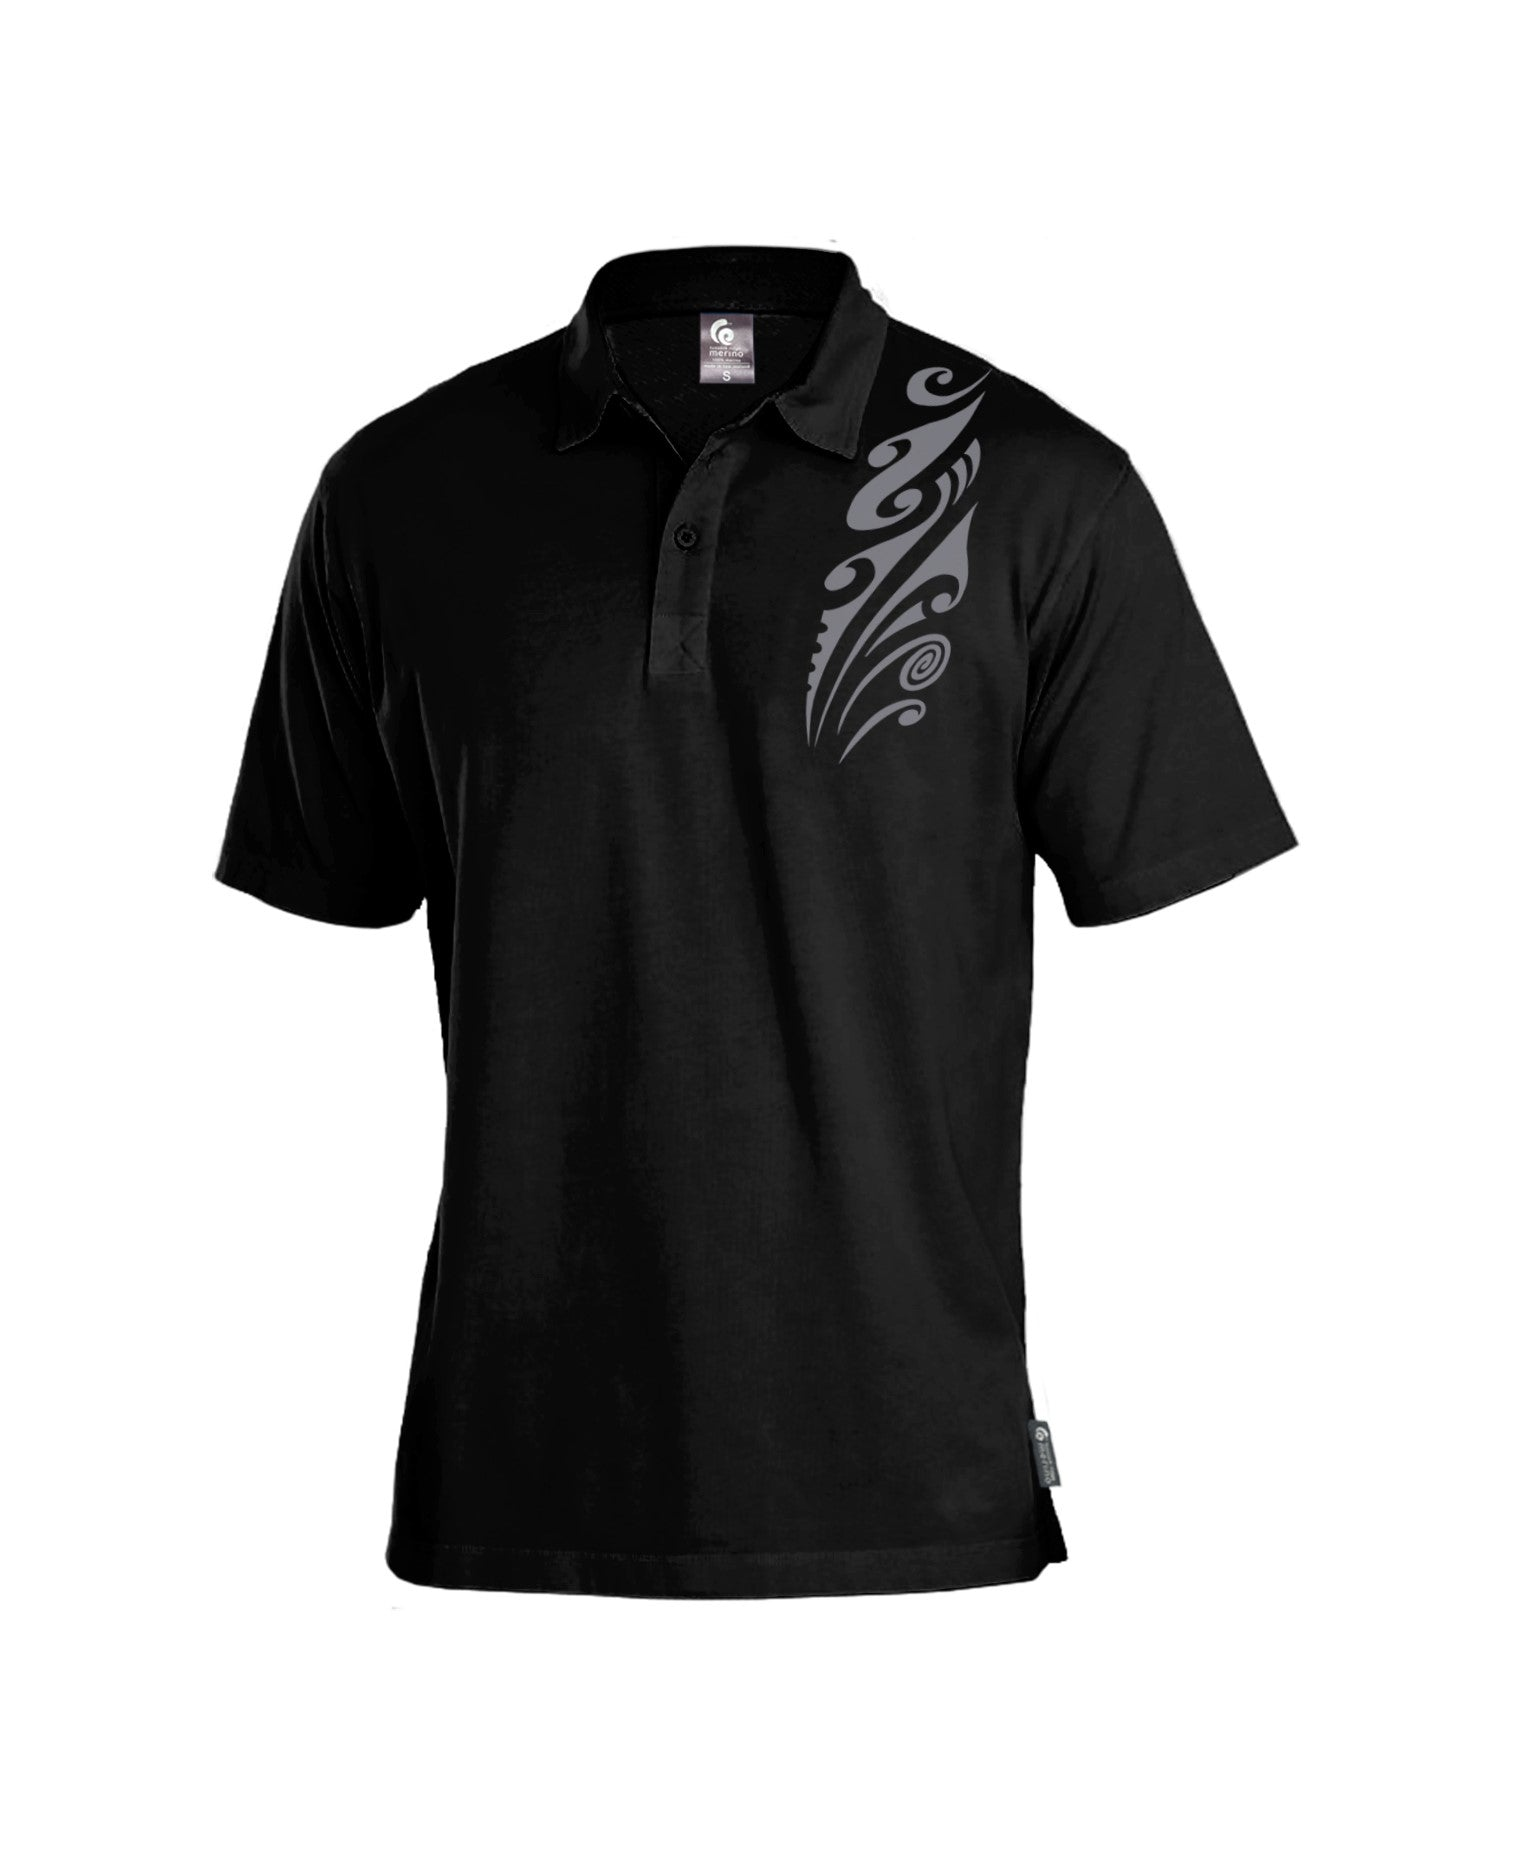 Merino Men's Black Polo. Made in New Zealand